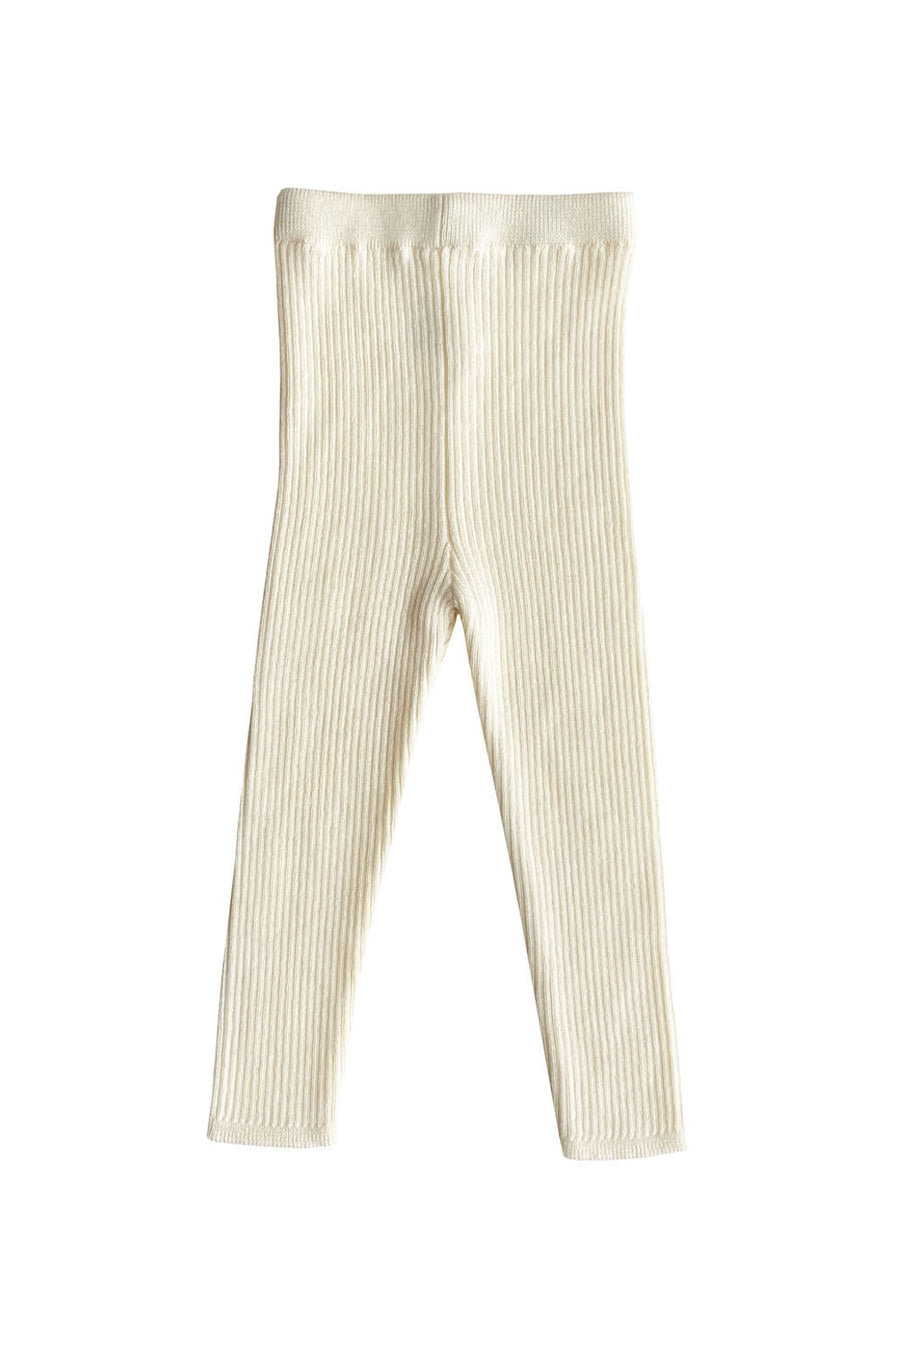 Ivory Knitted Wool Leggings by Mabli